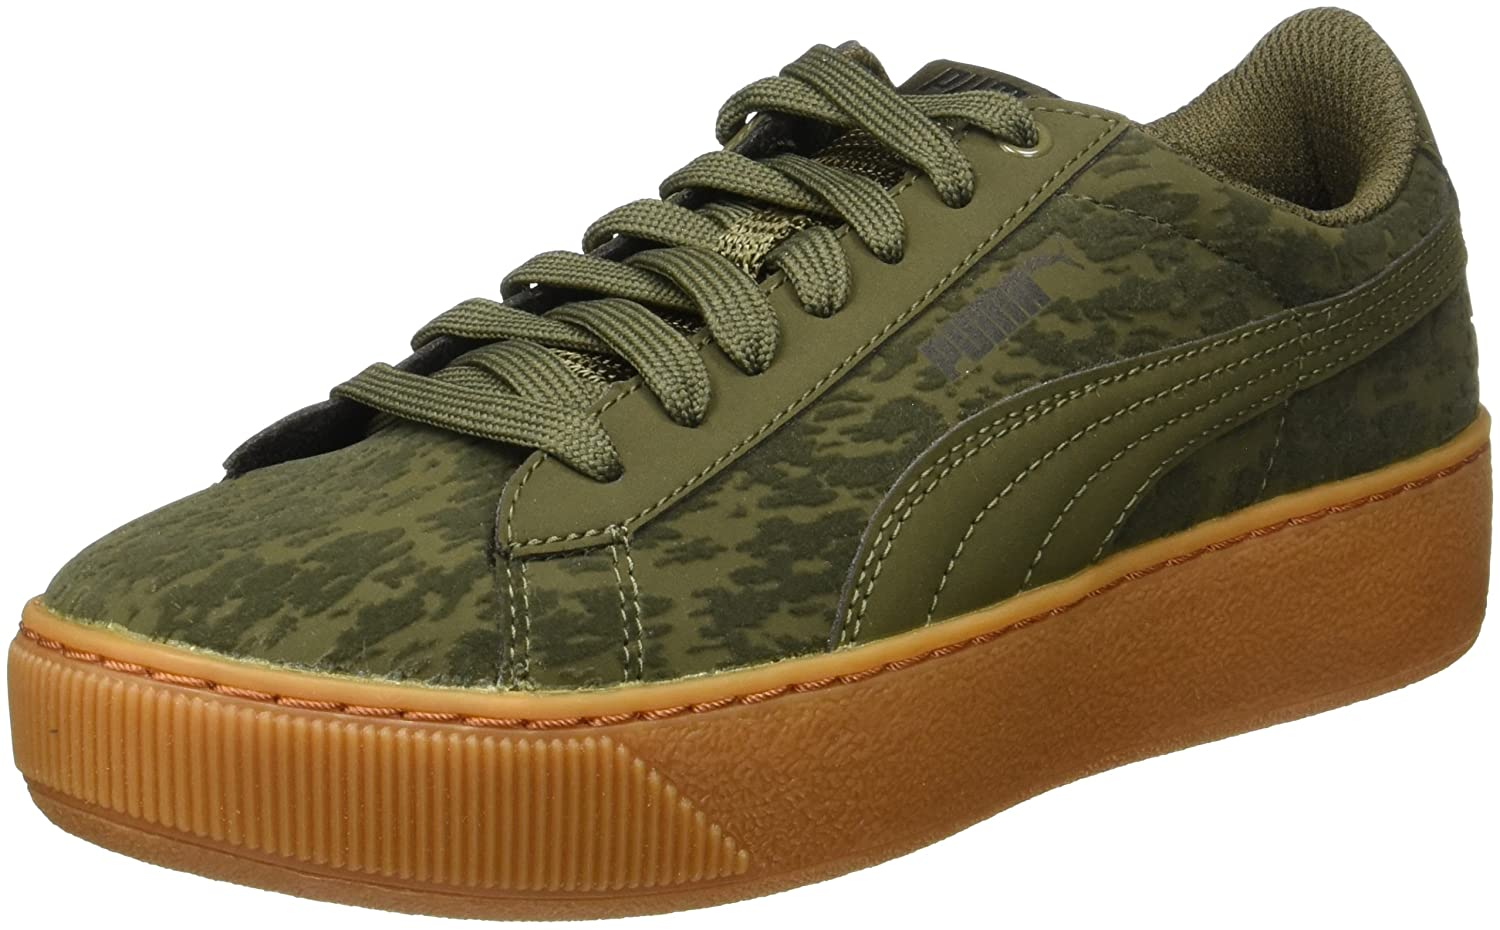 38d3ae732a3 Puma Women s Vikky Platform Vr Olive Night-Olive Night Sneakers - 8  UK India (42 EU)(36373001)  Buy Online at Low Prices in India - Amazon.in